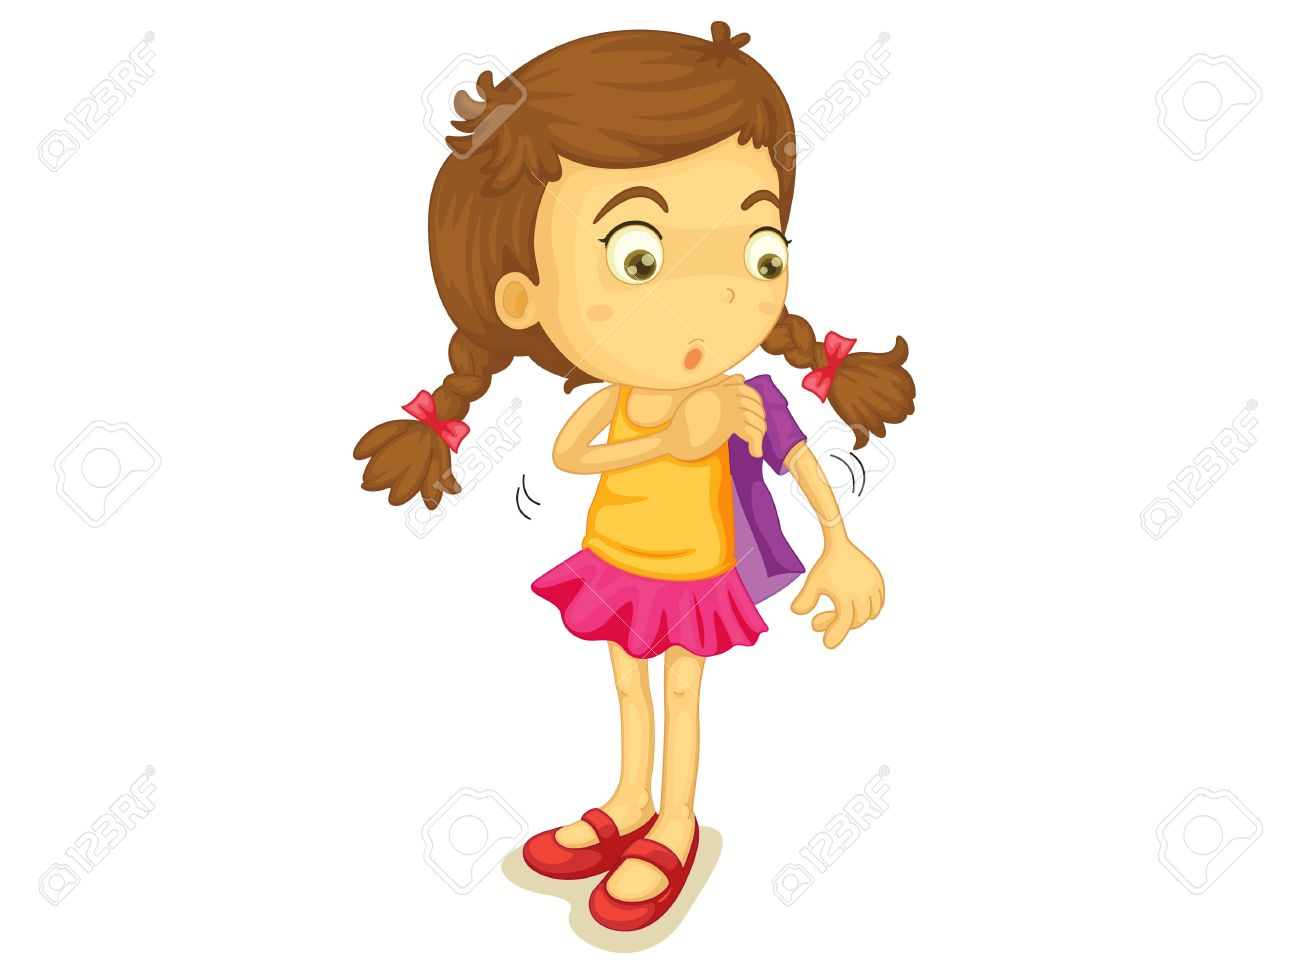 Girl Getting Dressed Clipart-Girl Getting Dressed Clipart-8